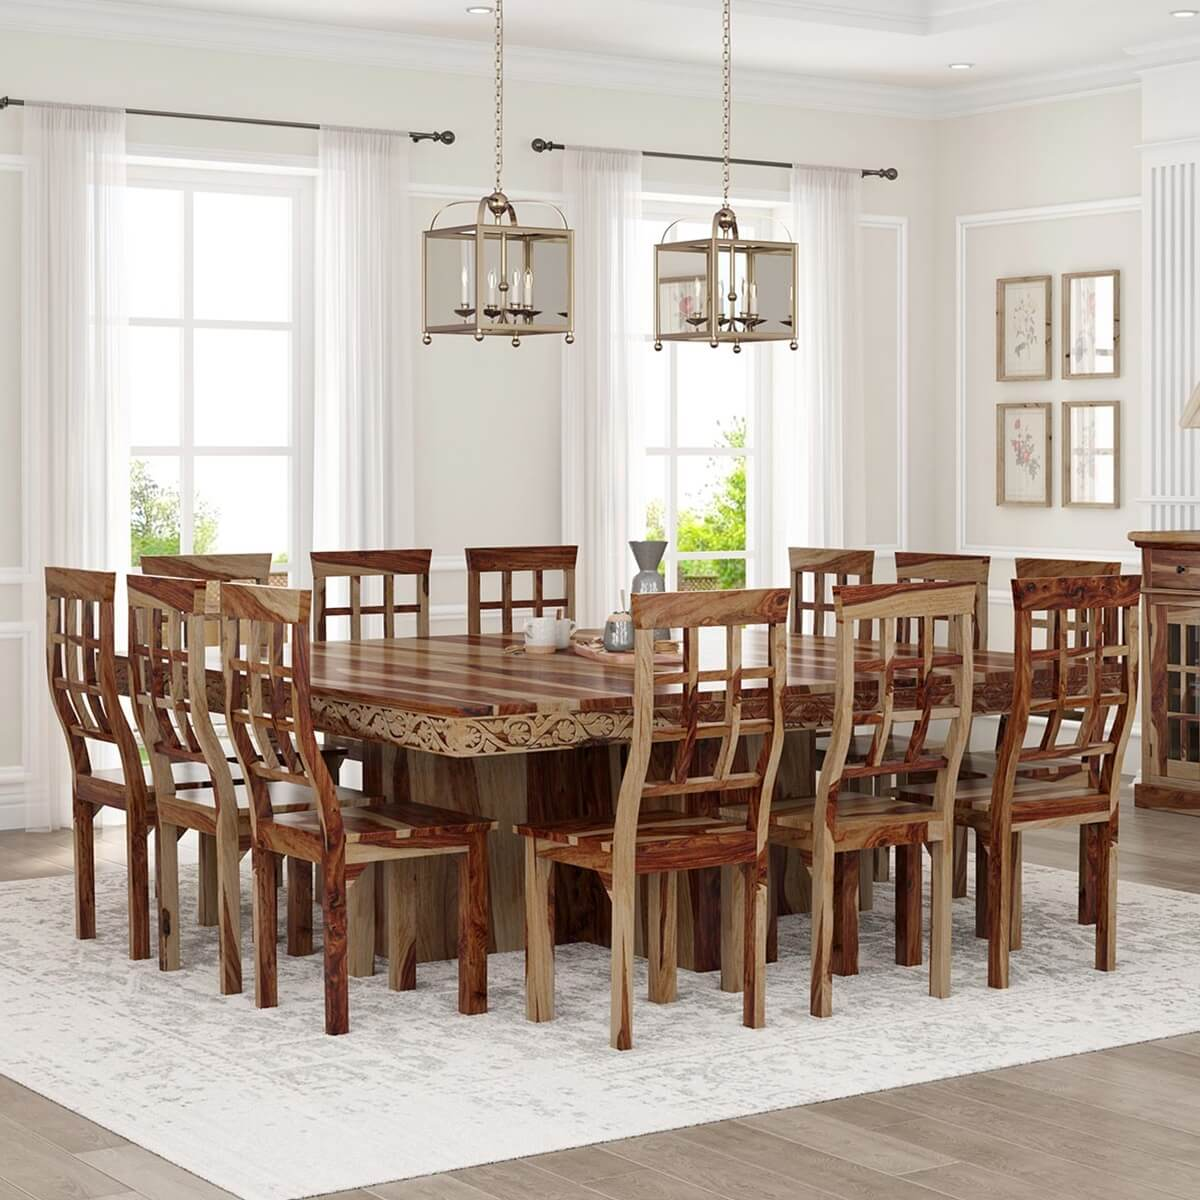 Dallas ranch large square dining room table and chair set for Dining room table and 8 chairs